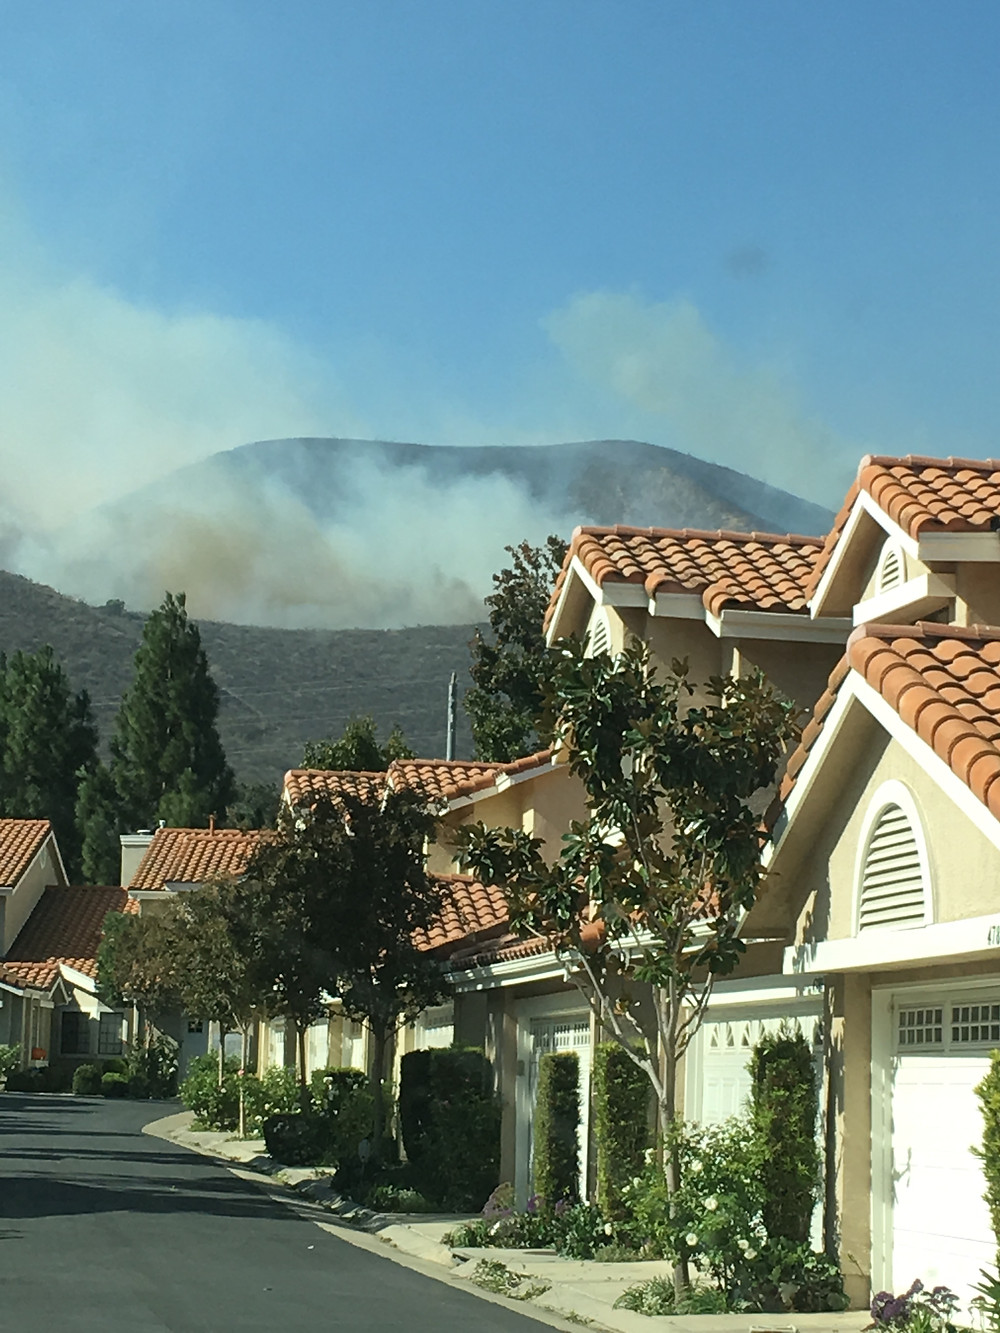 ​This was the view from in front of our house. Fire burned that whole mountain.